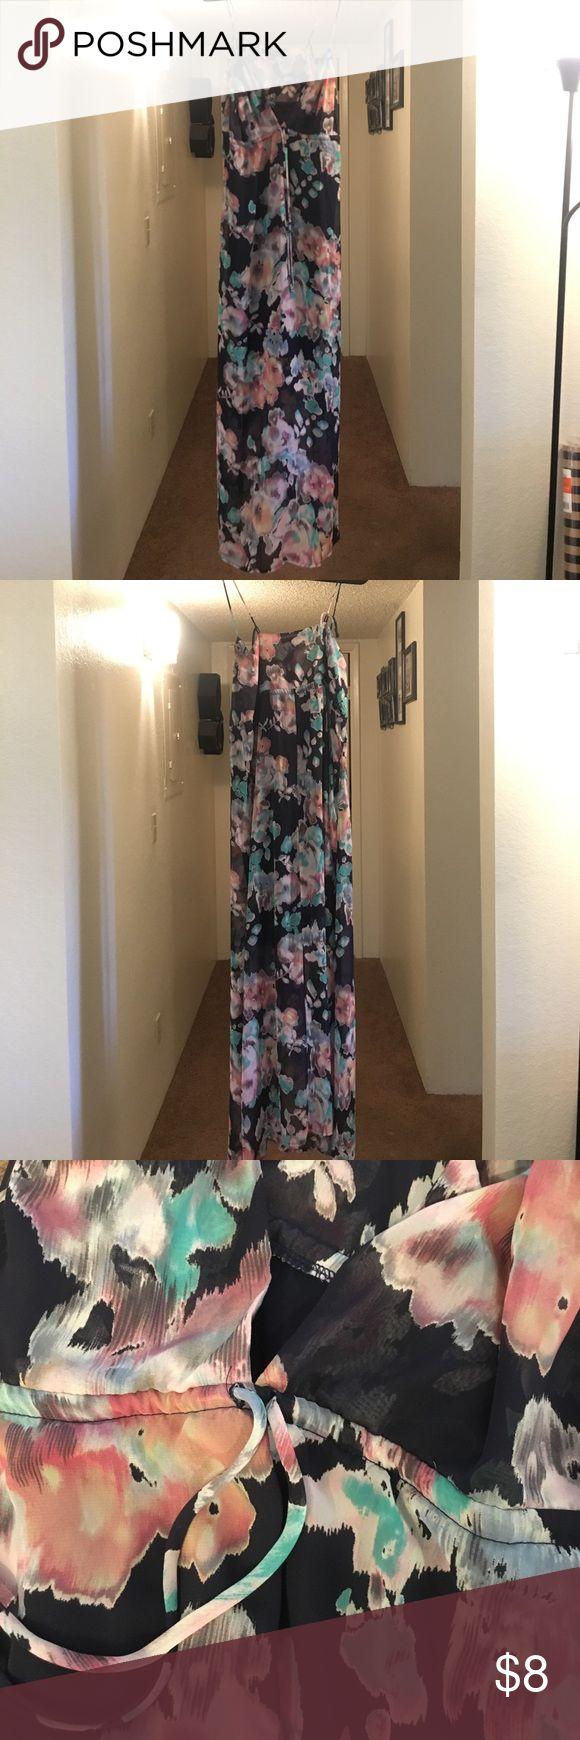 Sheer floral maxi dress Dark blue and pastel maxi dress. Has spaghetti straps that can be untied and adjusted, as well as a tie around the front to cinch it in. Pretty low cut v neck. Liner on inside of the dress stops at about mini dress length and rest of fabric is sheer. Only worn a few times. No sings of damage or wear. Forever 21 Dresses Maxi